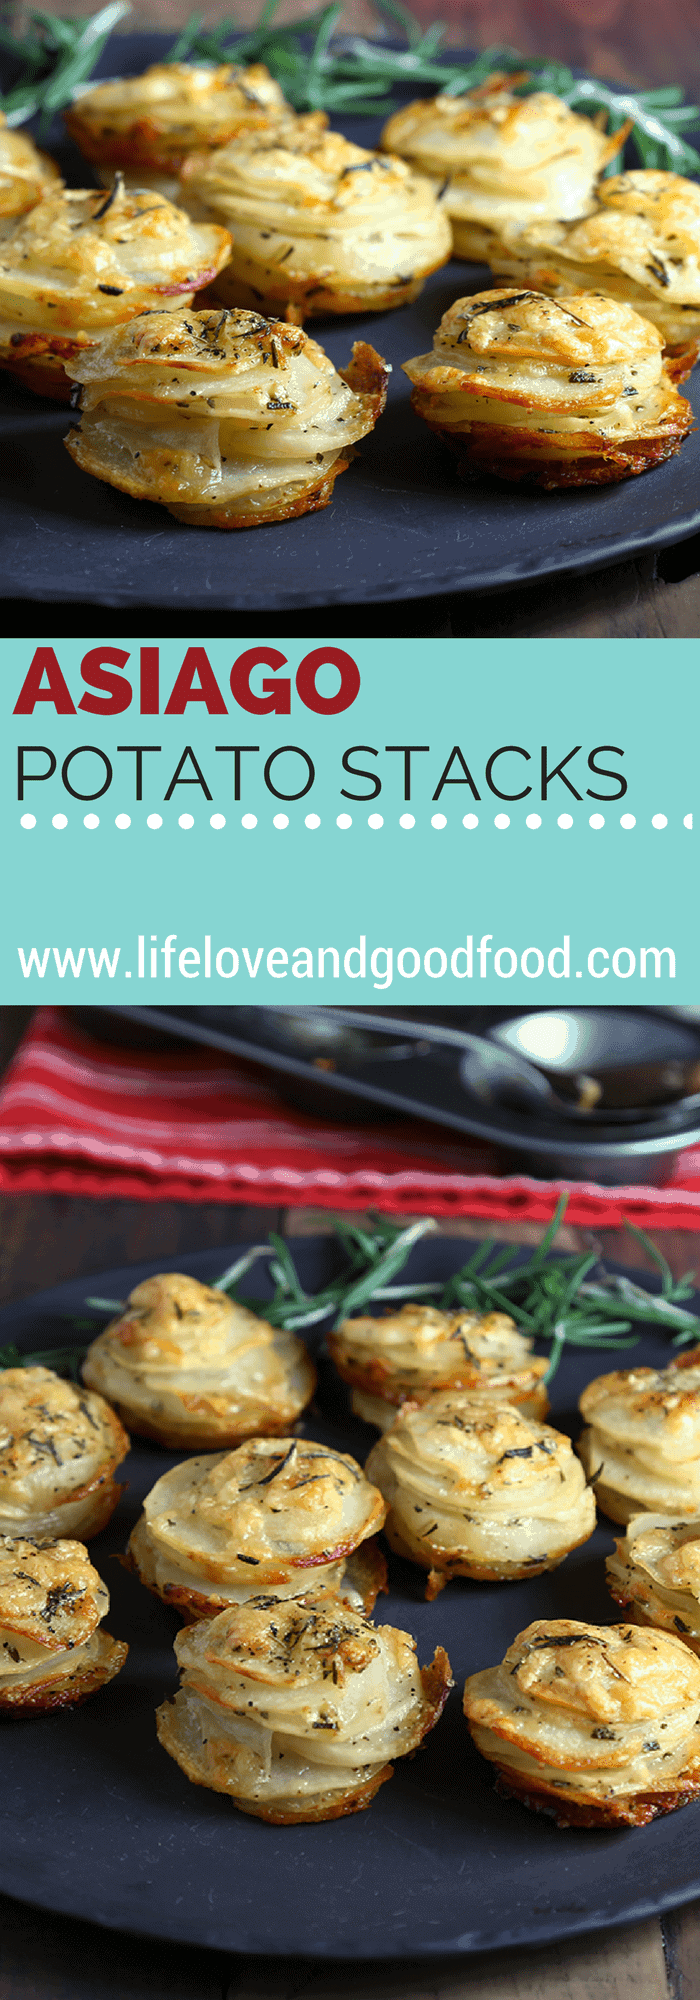 These fancy little Asiago Potato Stacks, seasoned with fresh rosemary and sea salt, are cheesy, crispy, and perfectly elegant! #appetizer #potato #asiago